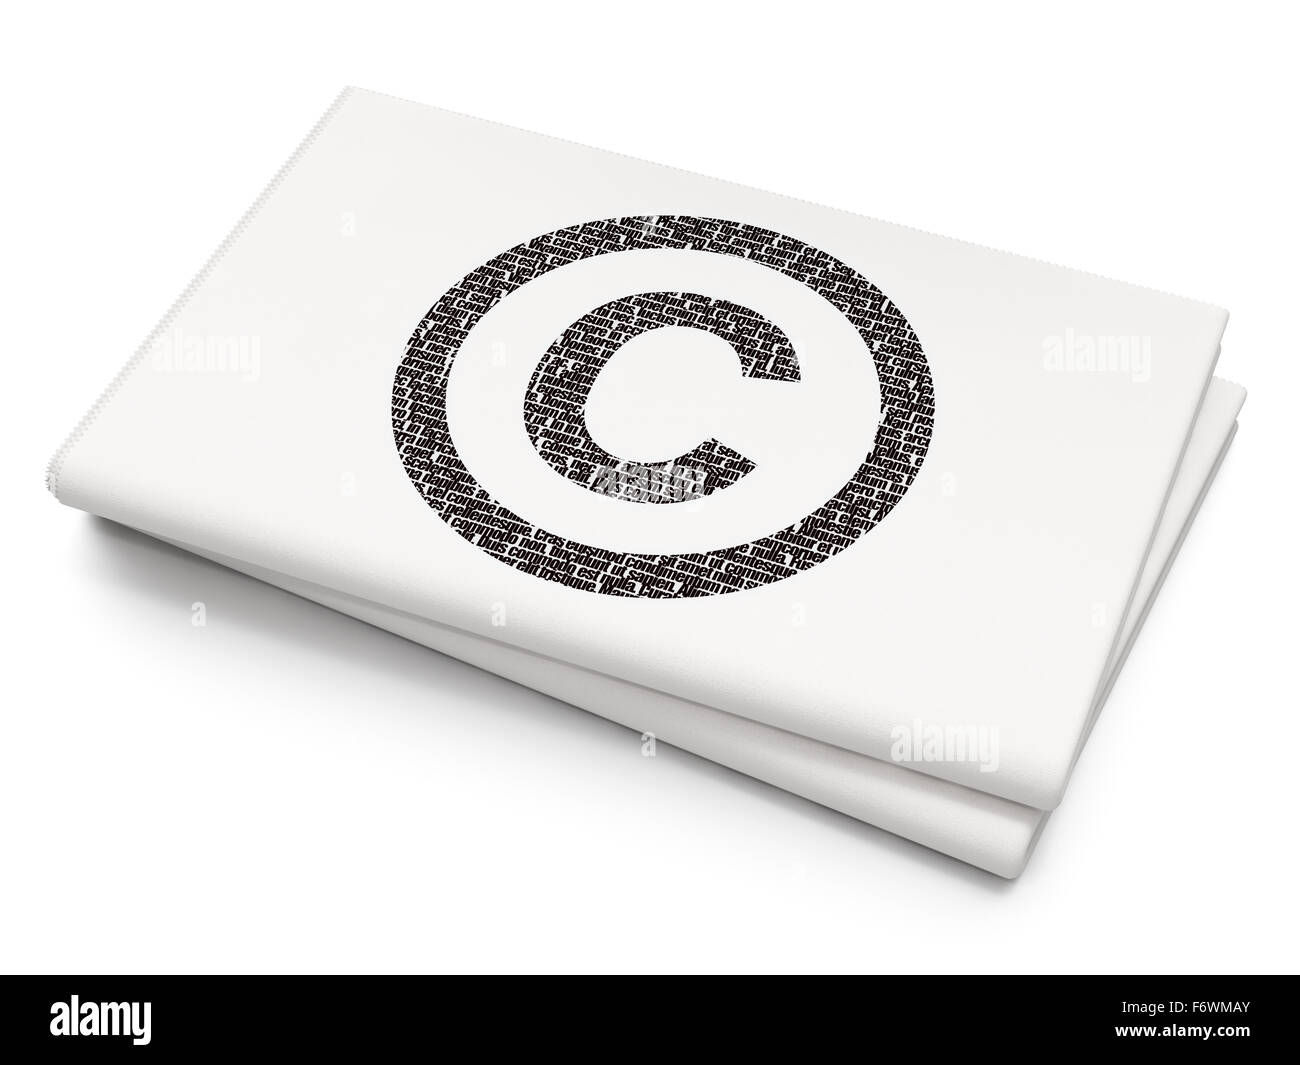 Law Concept Copyright On Blank Newspaper Background Stock Photo